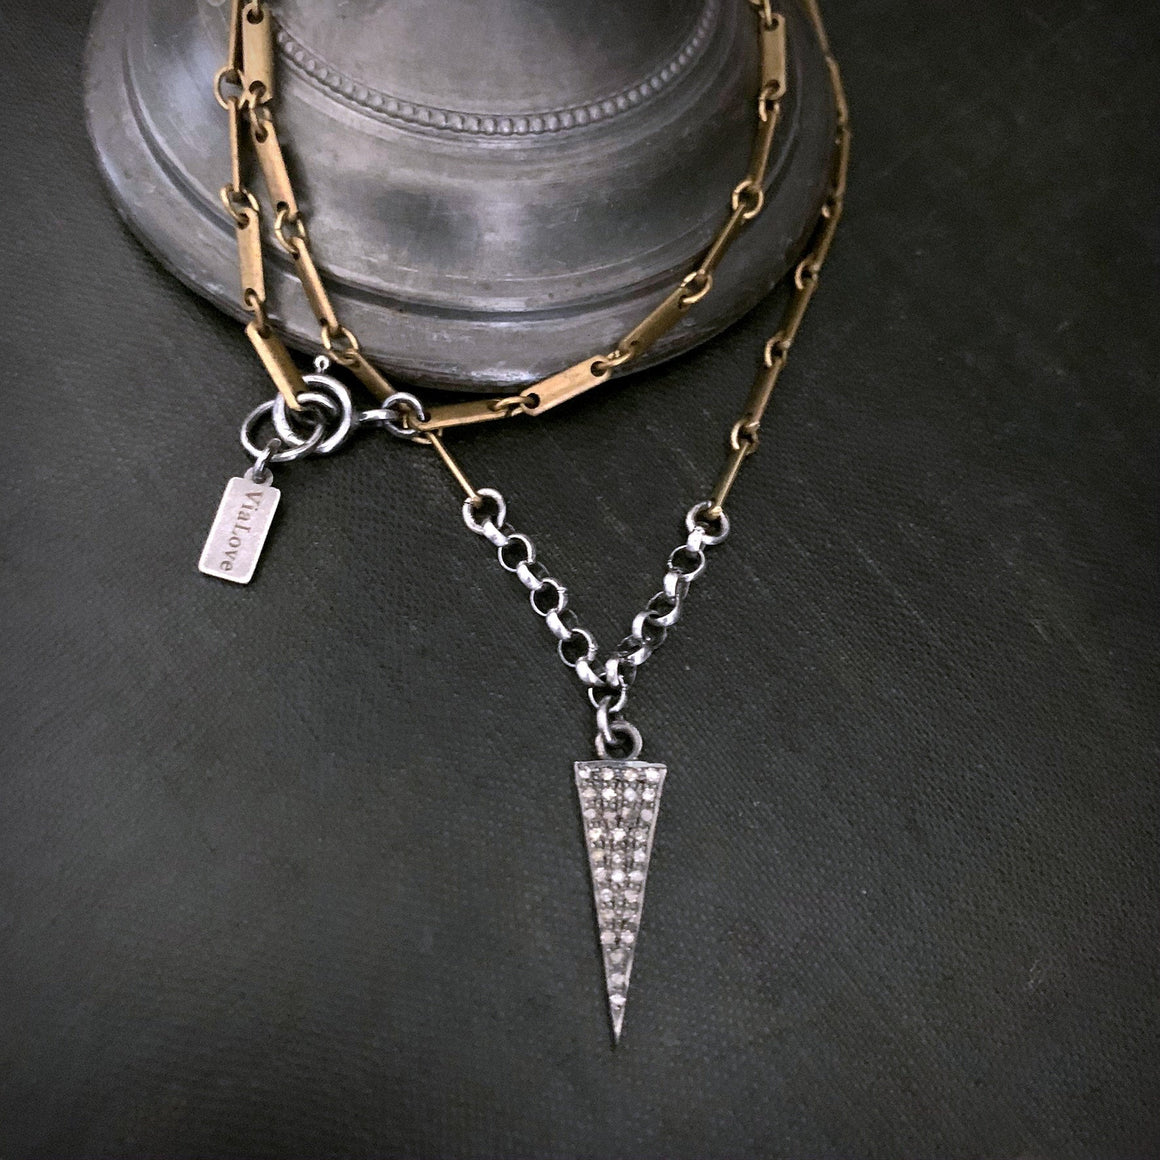 Pave Diamond TRIANGLE Spearhead Brass Chain Necklace - ViaLove Designs